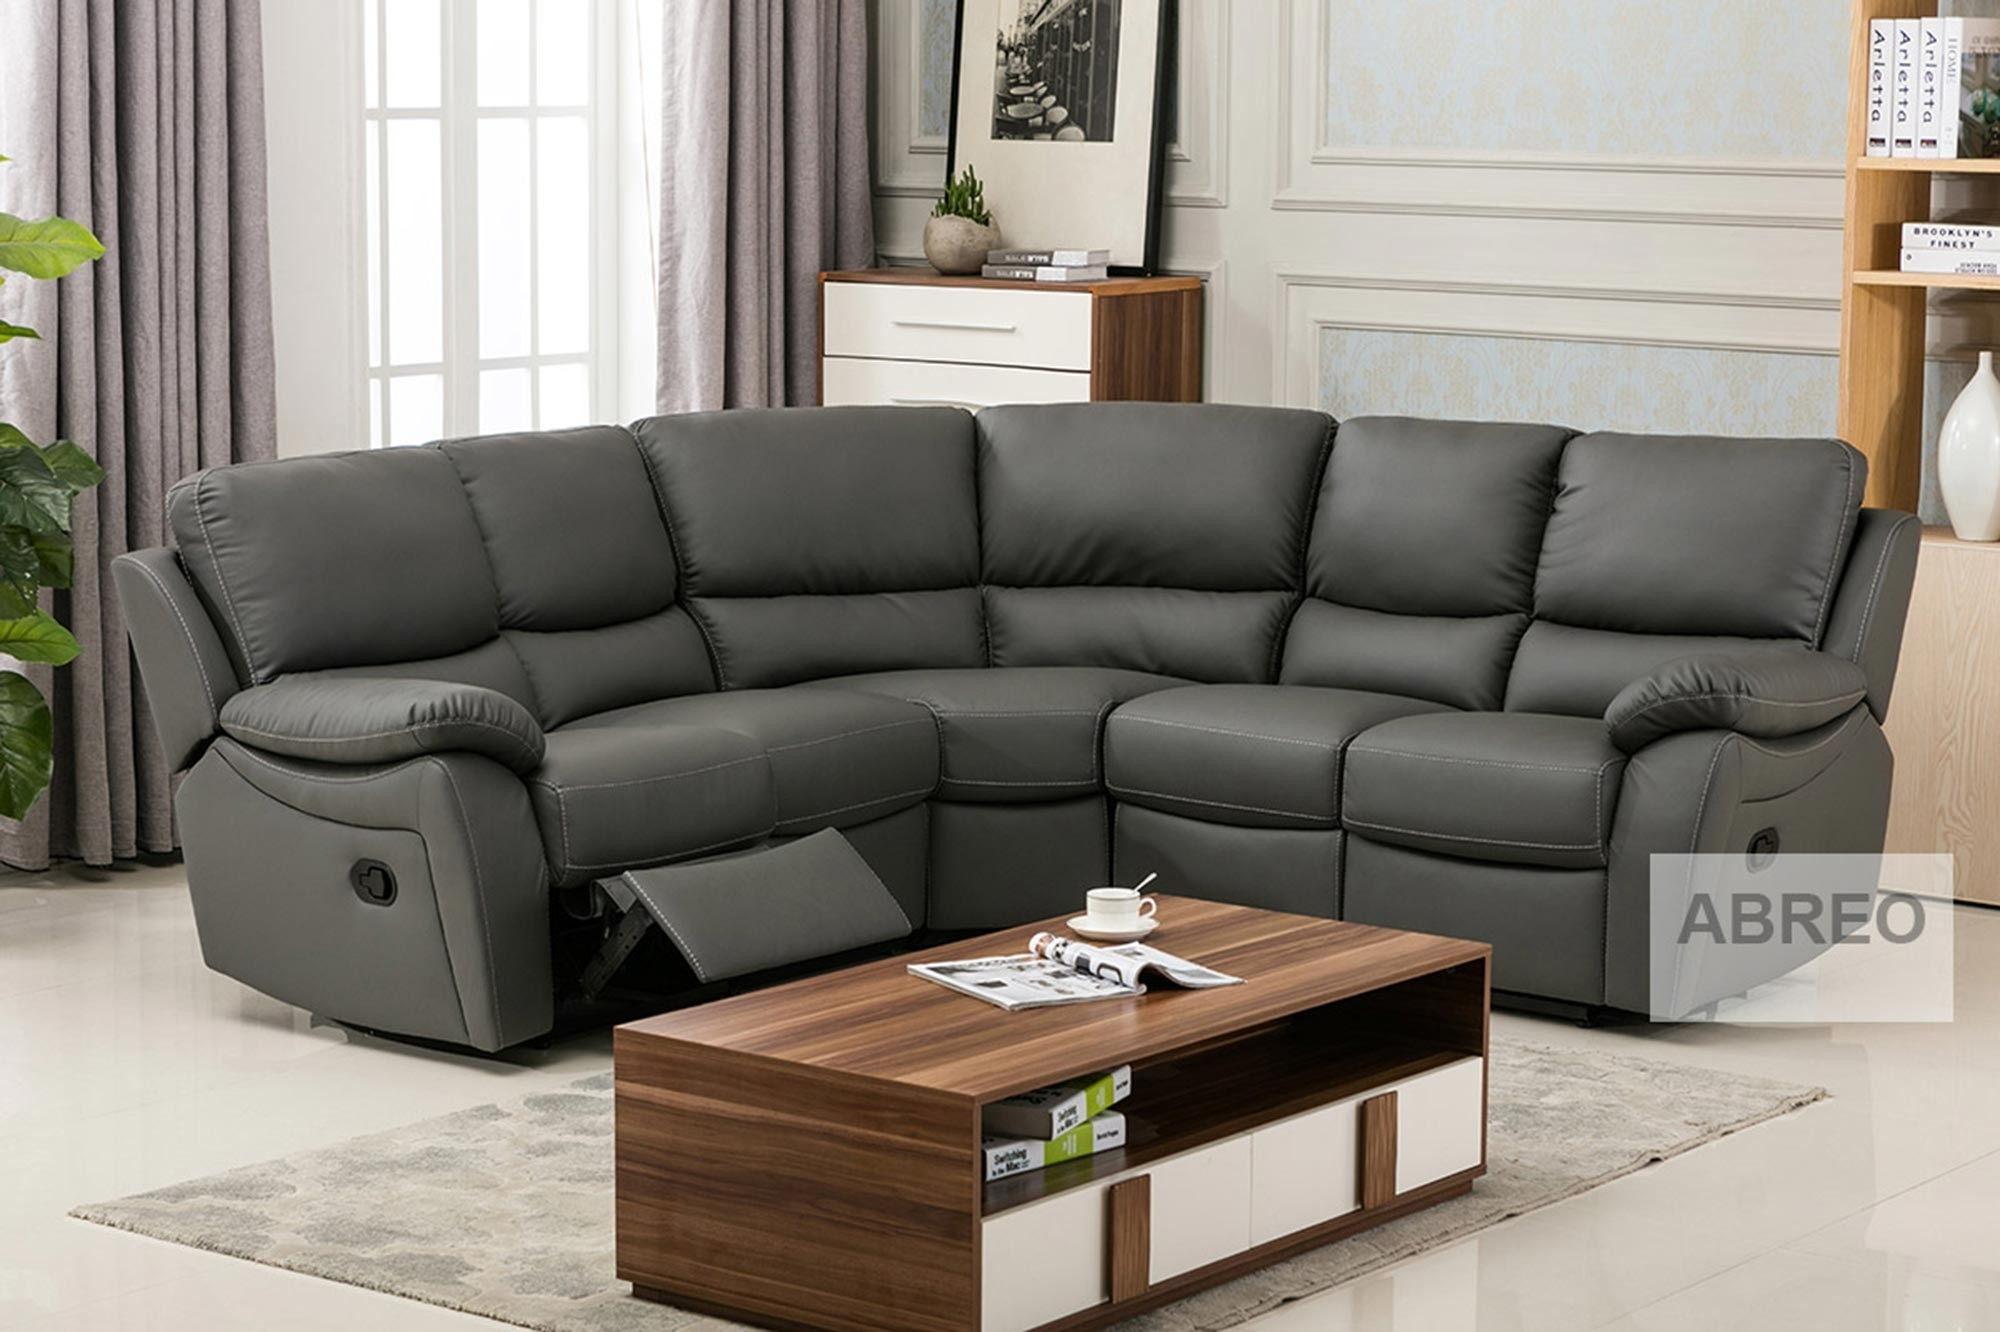 ludlow reclining corner sofa in grey